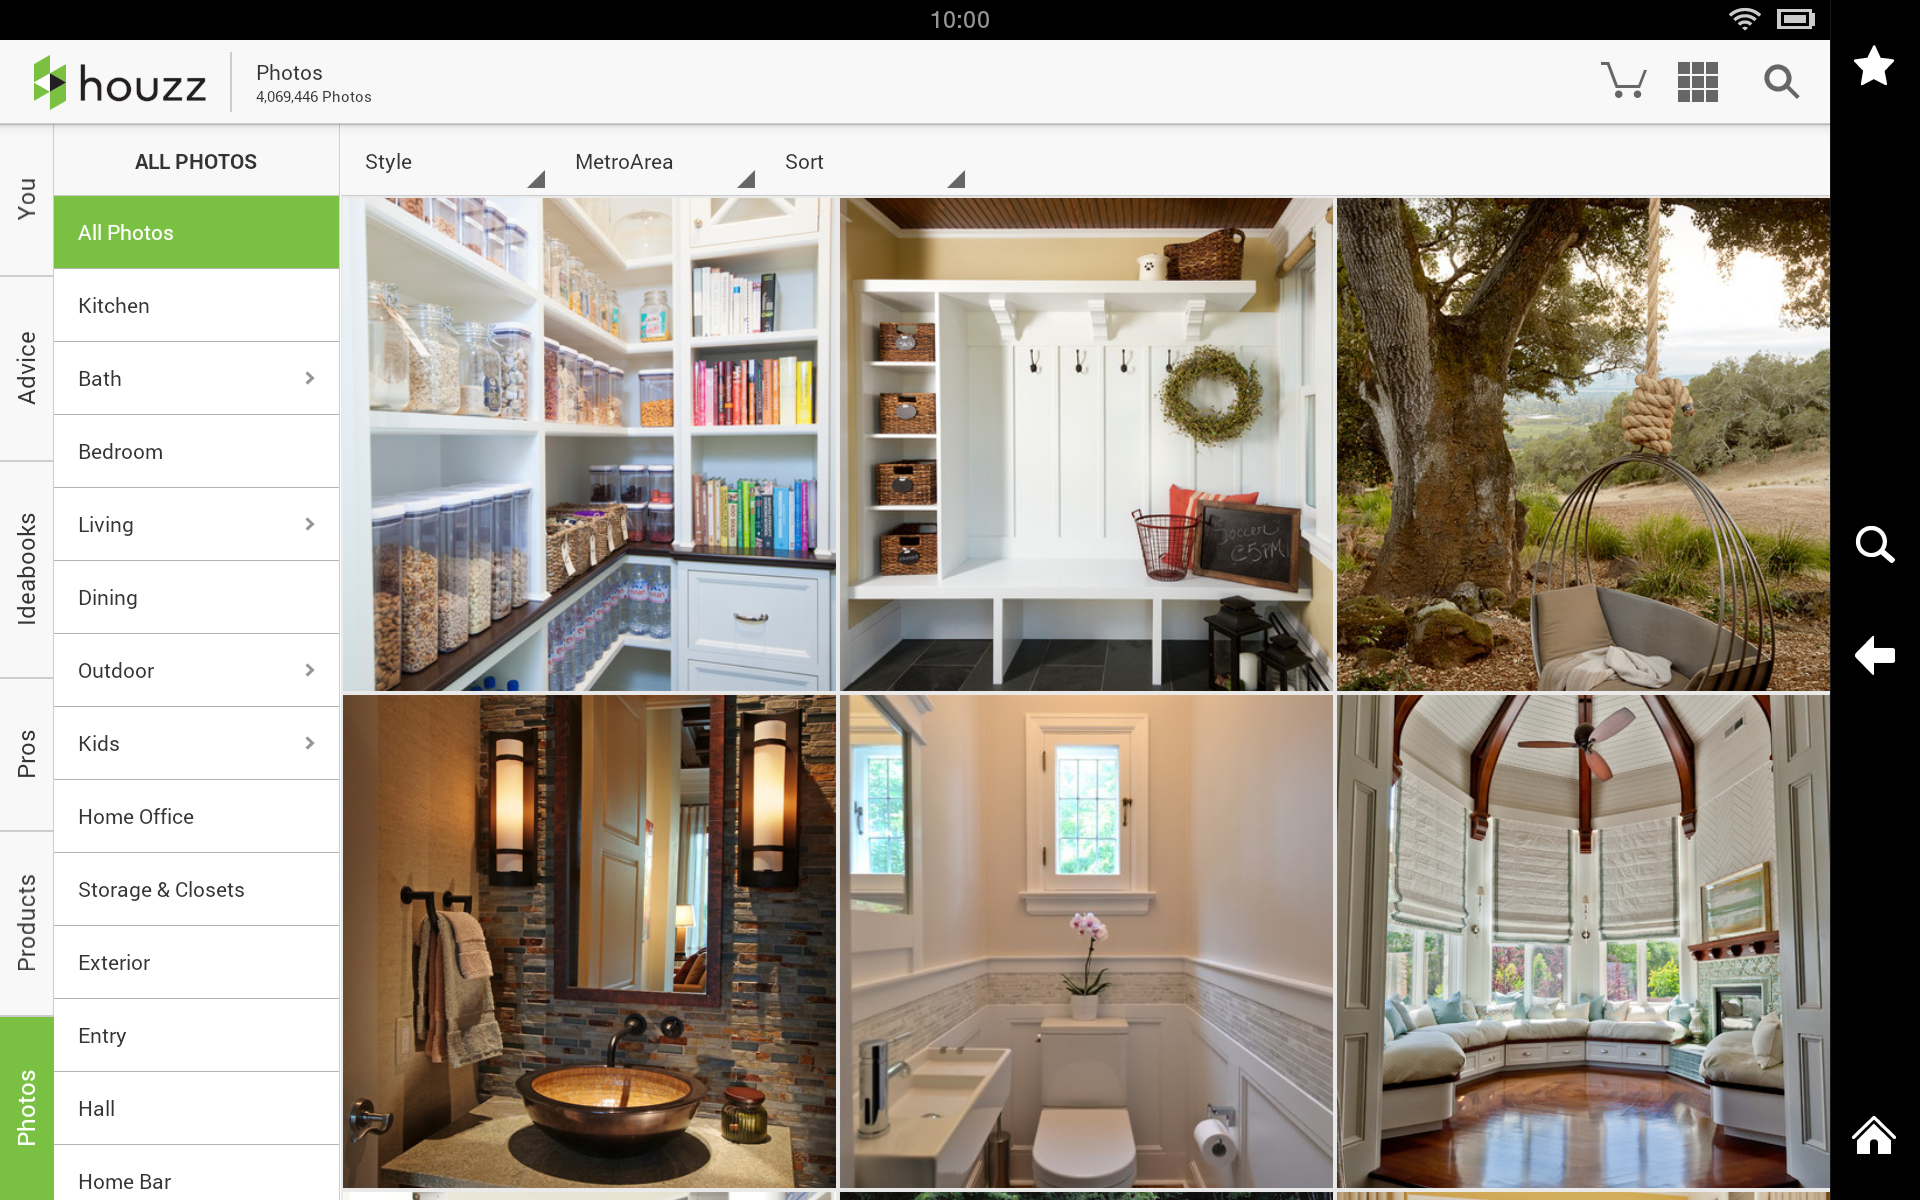 Houzz interior design ideas appstore for House interior design ideas app